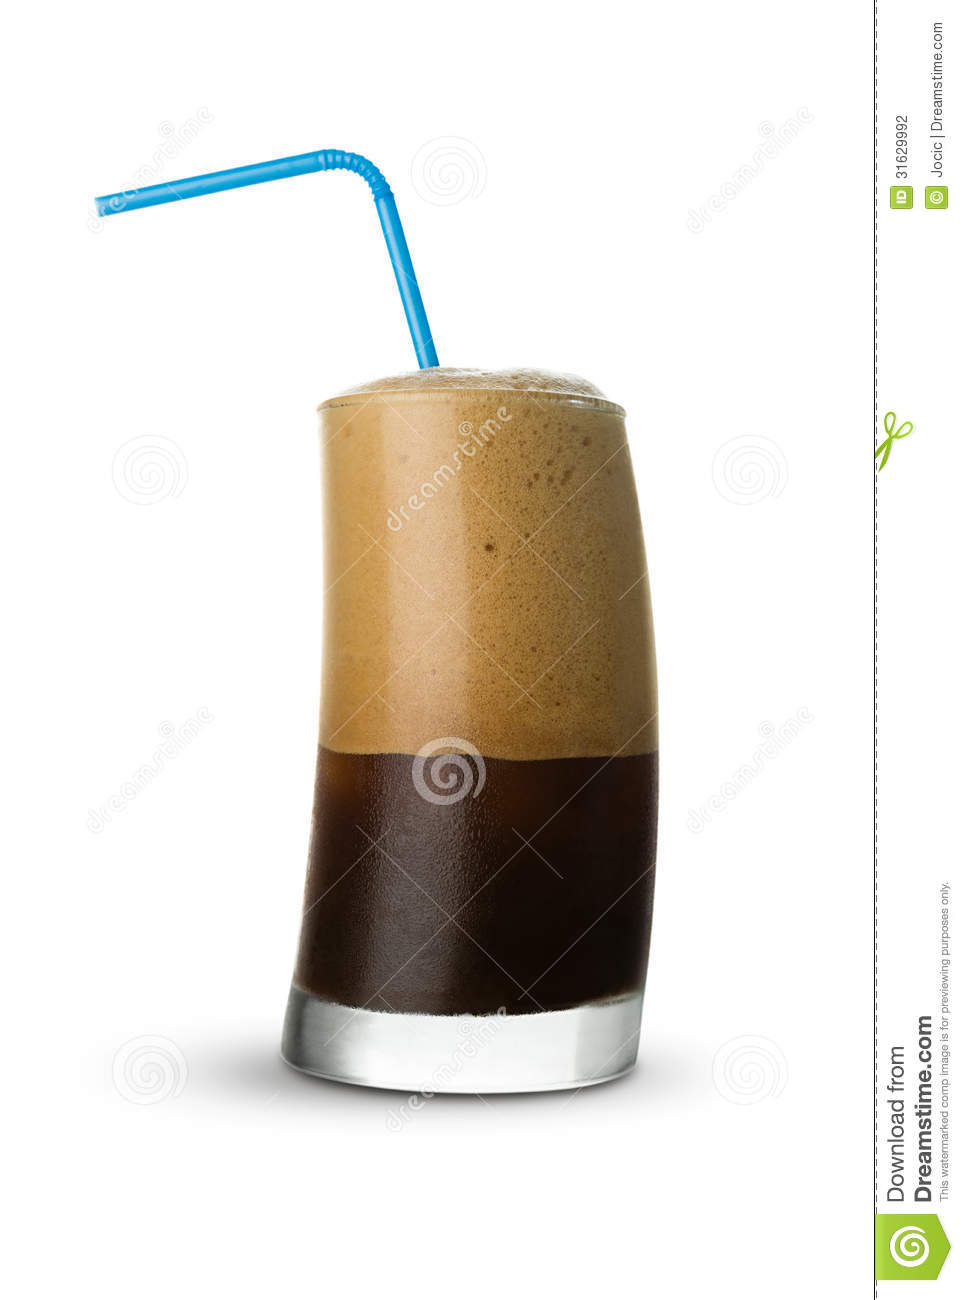 Frappe Coffee Stock Photography - Image: 31629992